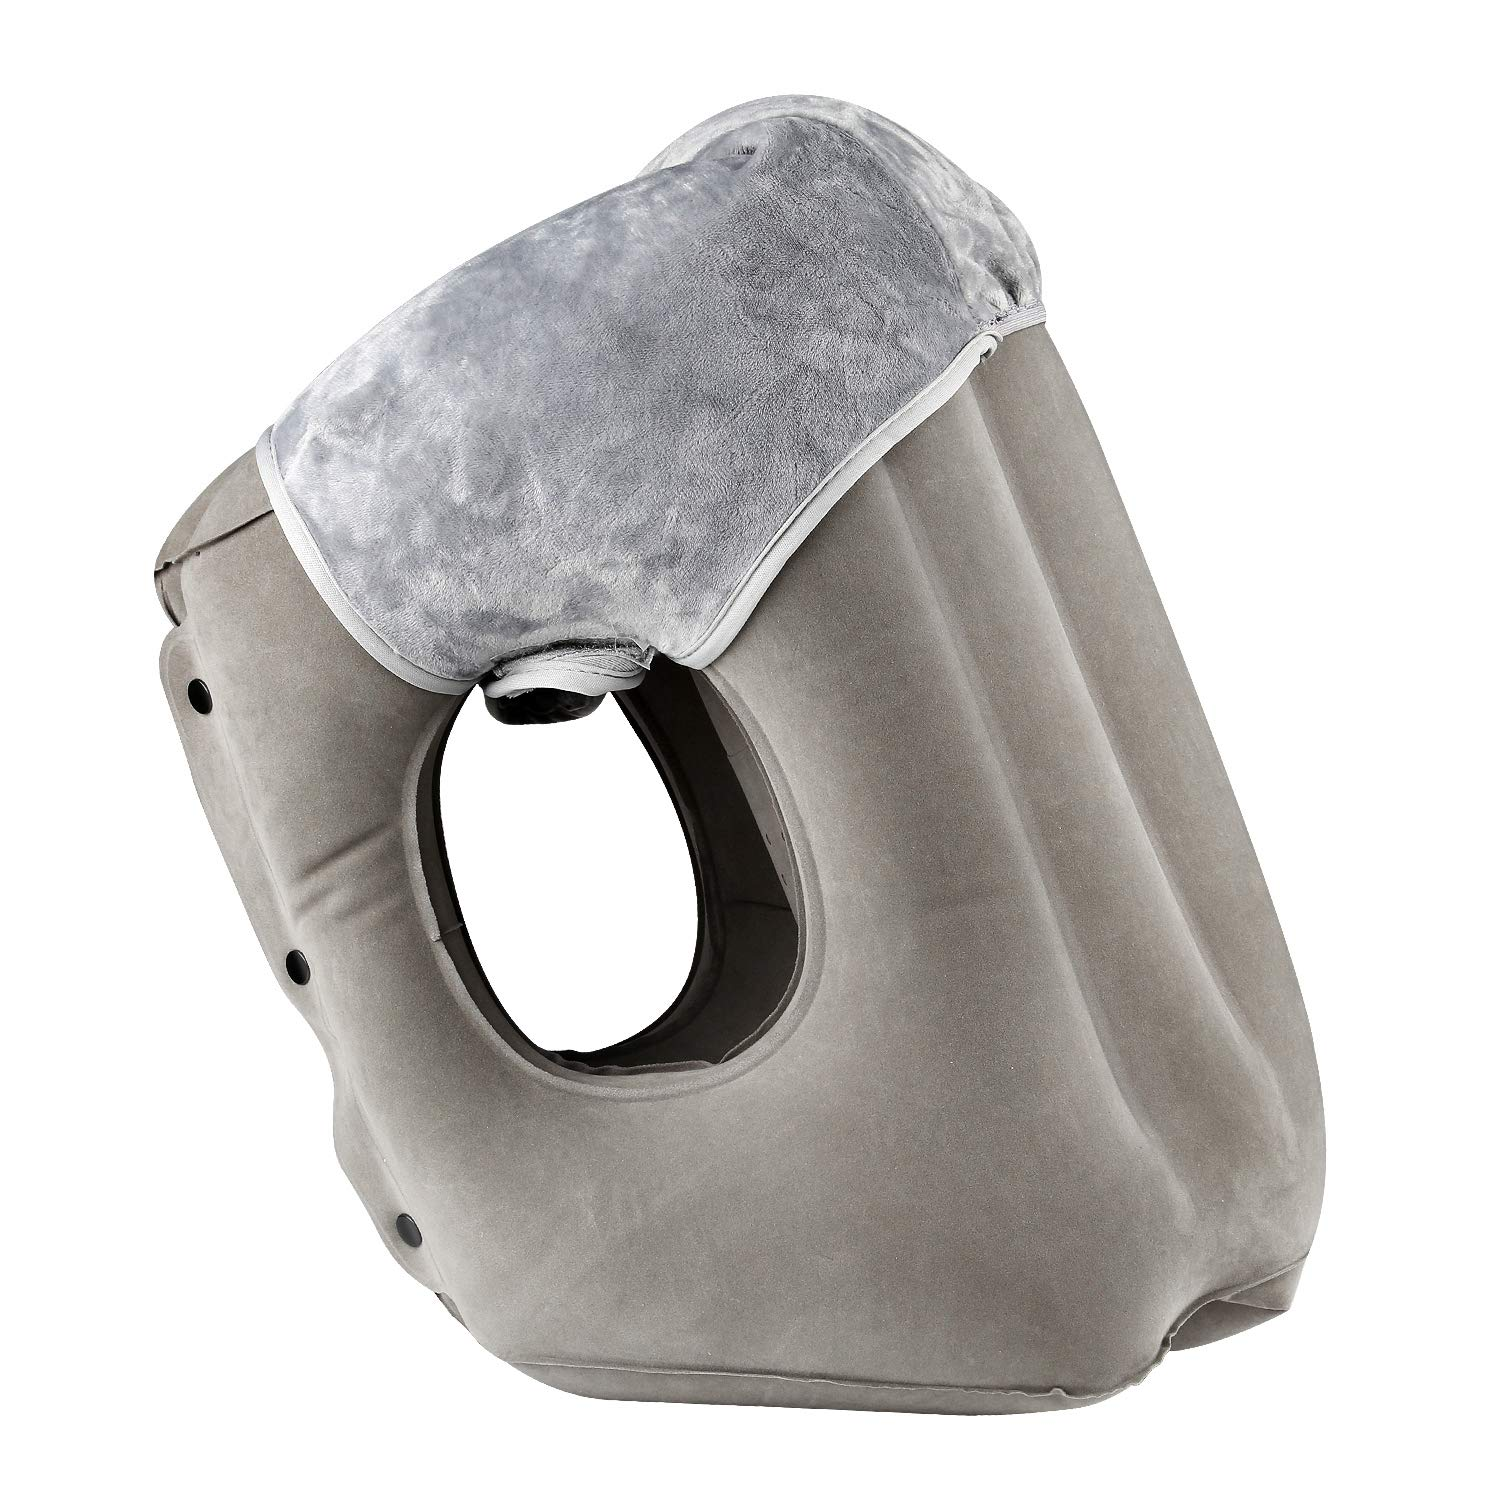 simptech Inflatable Travel Pillow,Airplane Pillow with Super Soft Slipcover, Big Valve Design Inflate and Deflate in Seconds, Unfolding Used As Lumbar Support,A Patented Product,HAIYANLE (Grey)